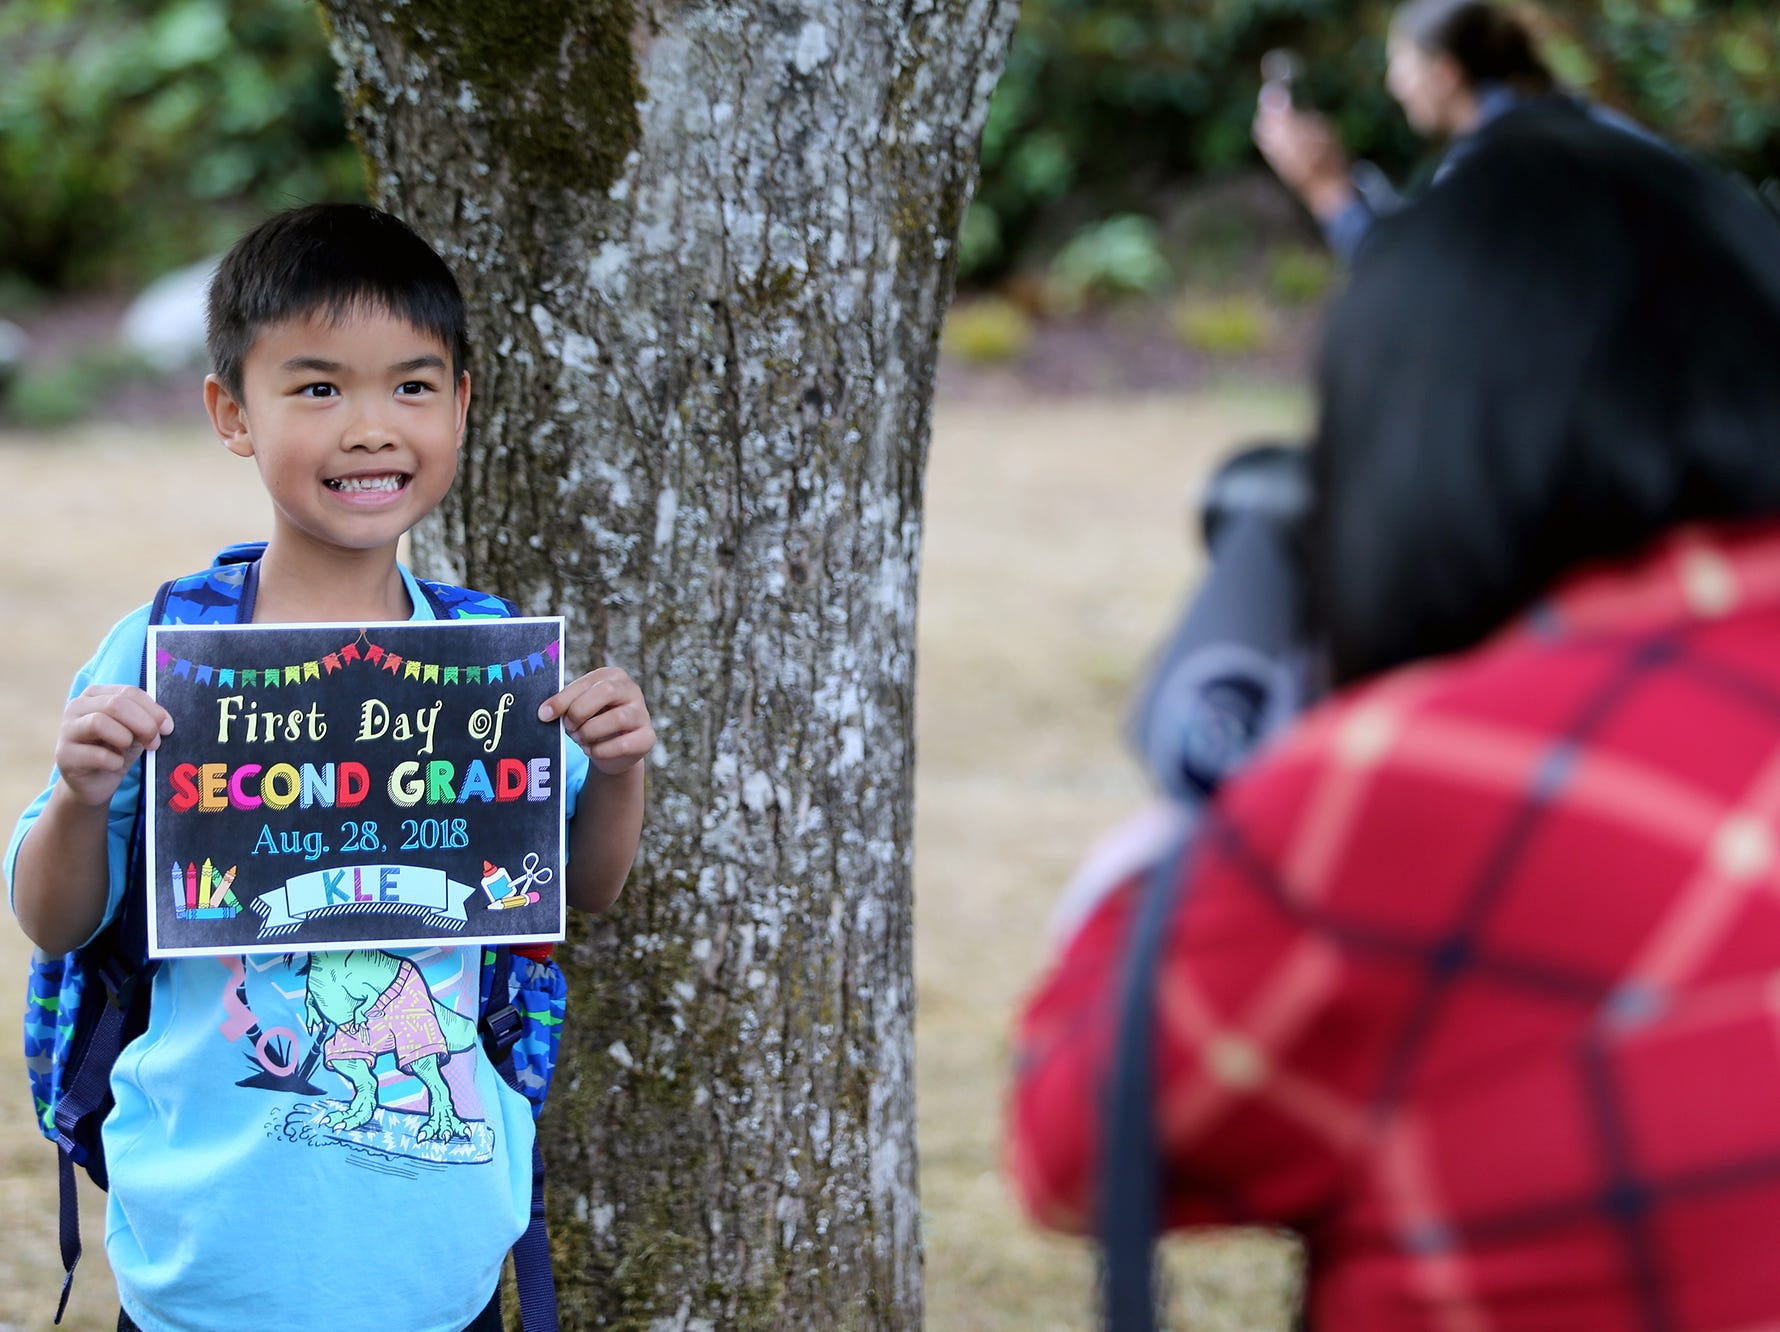 Jayden Aguilar, 7, poses for a photo by his mom, Daisy, on the first day of class at Kitsap Lake Elementary School in Bremerton on Wednesday.